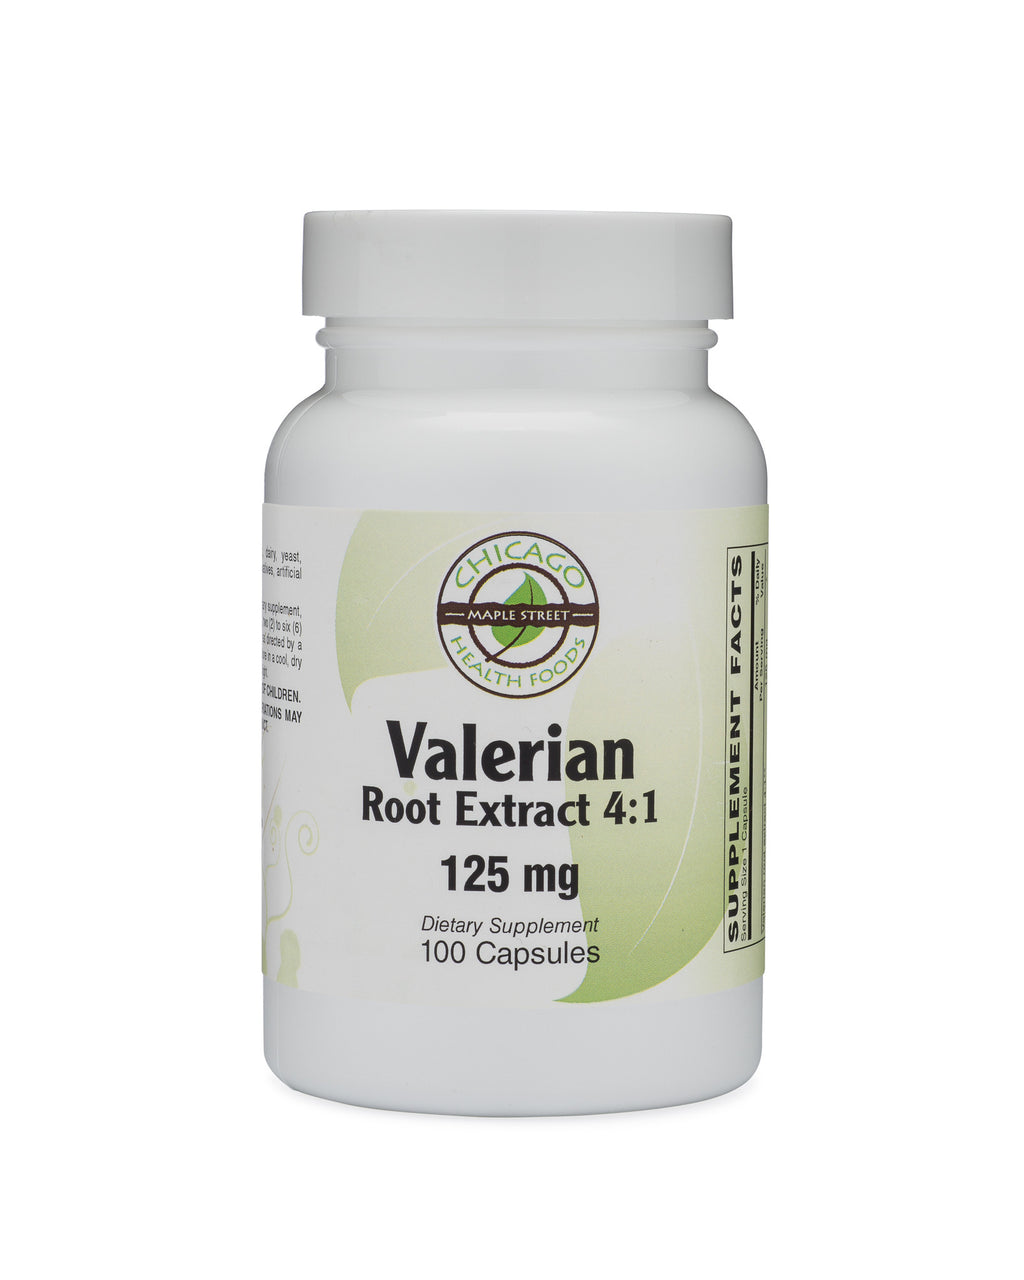 Valerian root extract 125mg 100 capsules chicago health